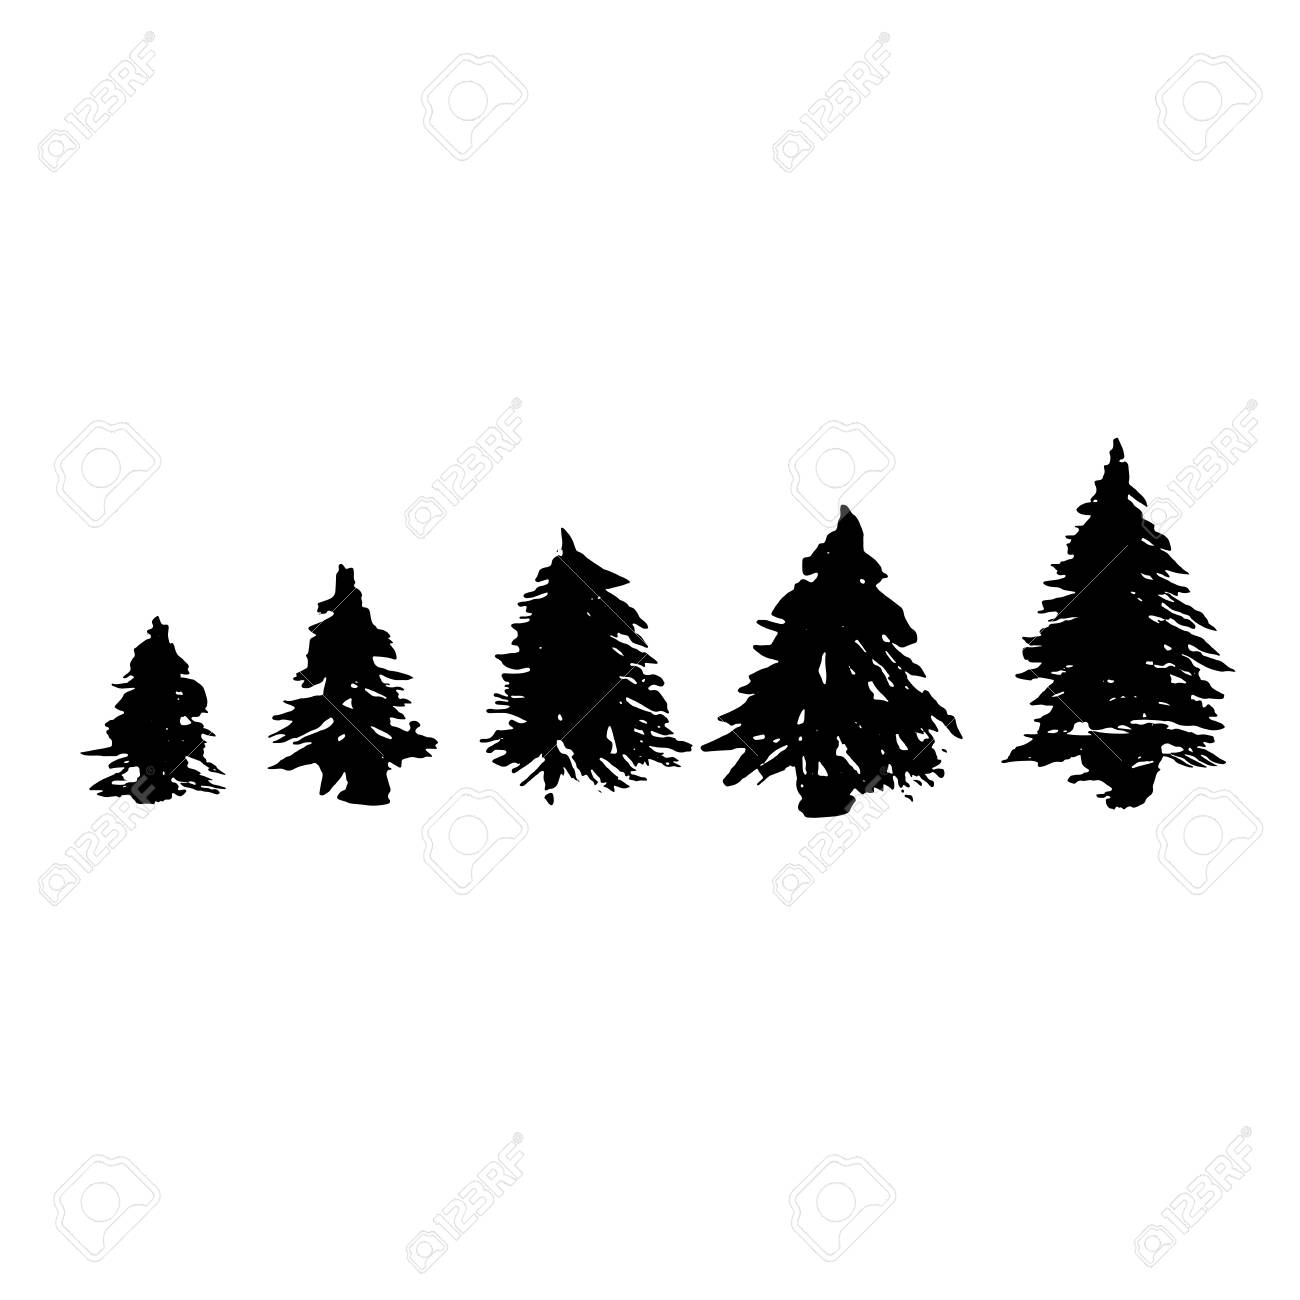 Christmas Trees Silhouette.Set Of Fir Tree Silhouettes Black Grunge Christmas Trees Watercolor